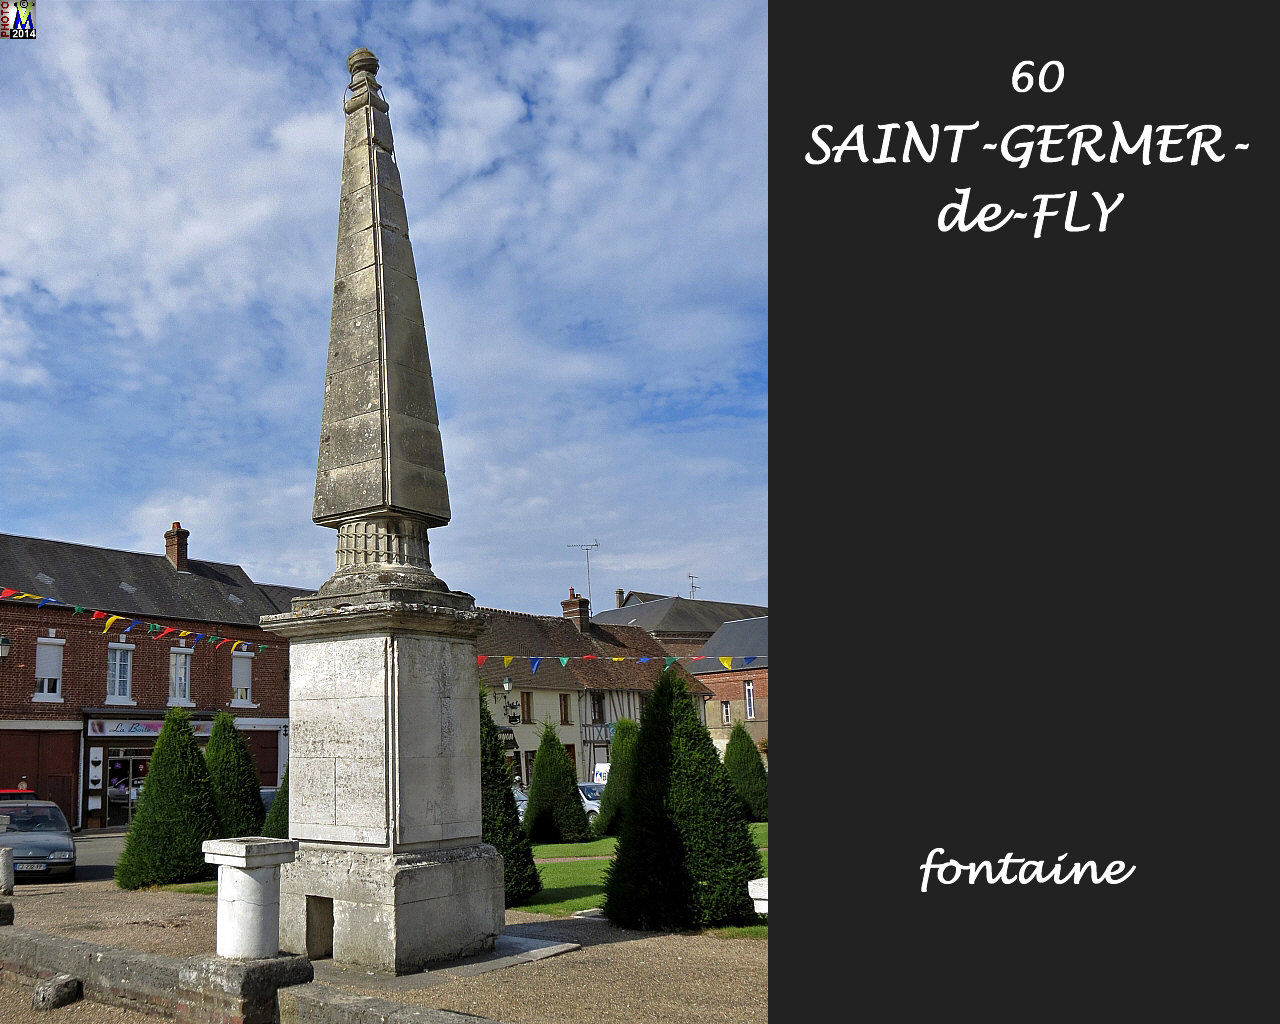 60StGERMER-FLY_fontaine_110.jpg